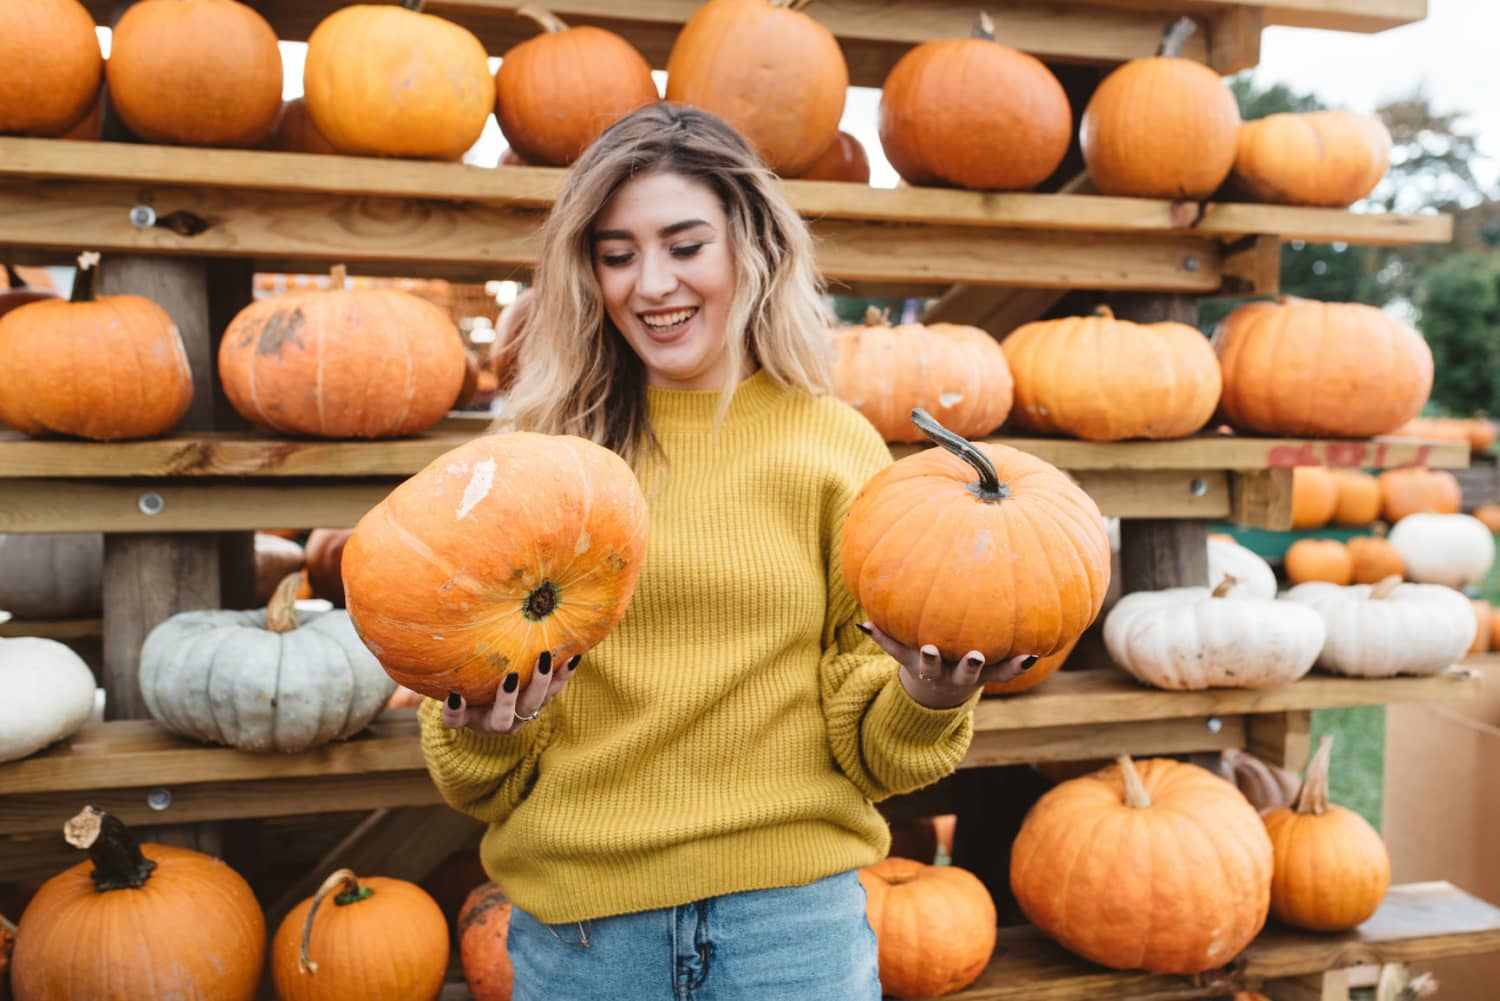 36 Cheap or Free Things You Can Do This Fall